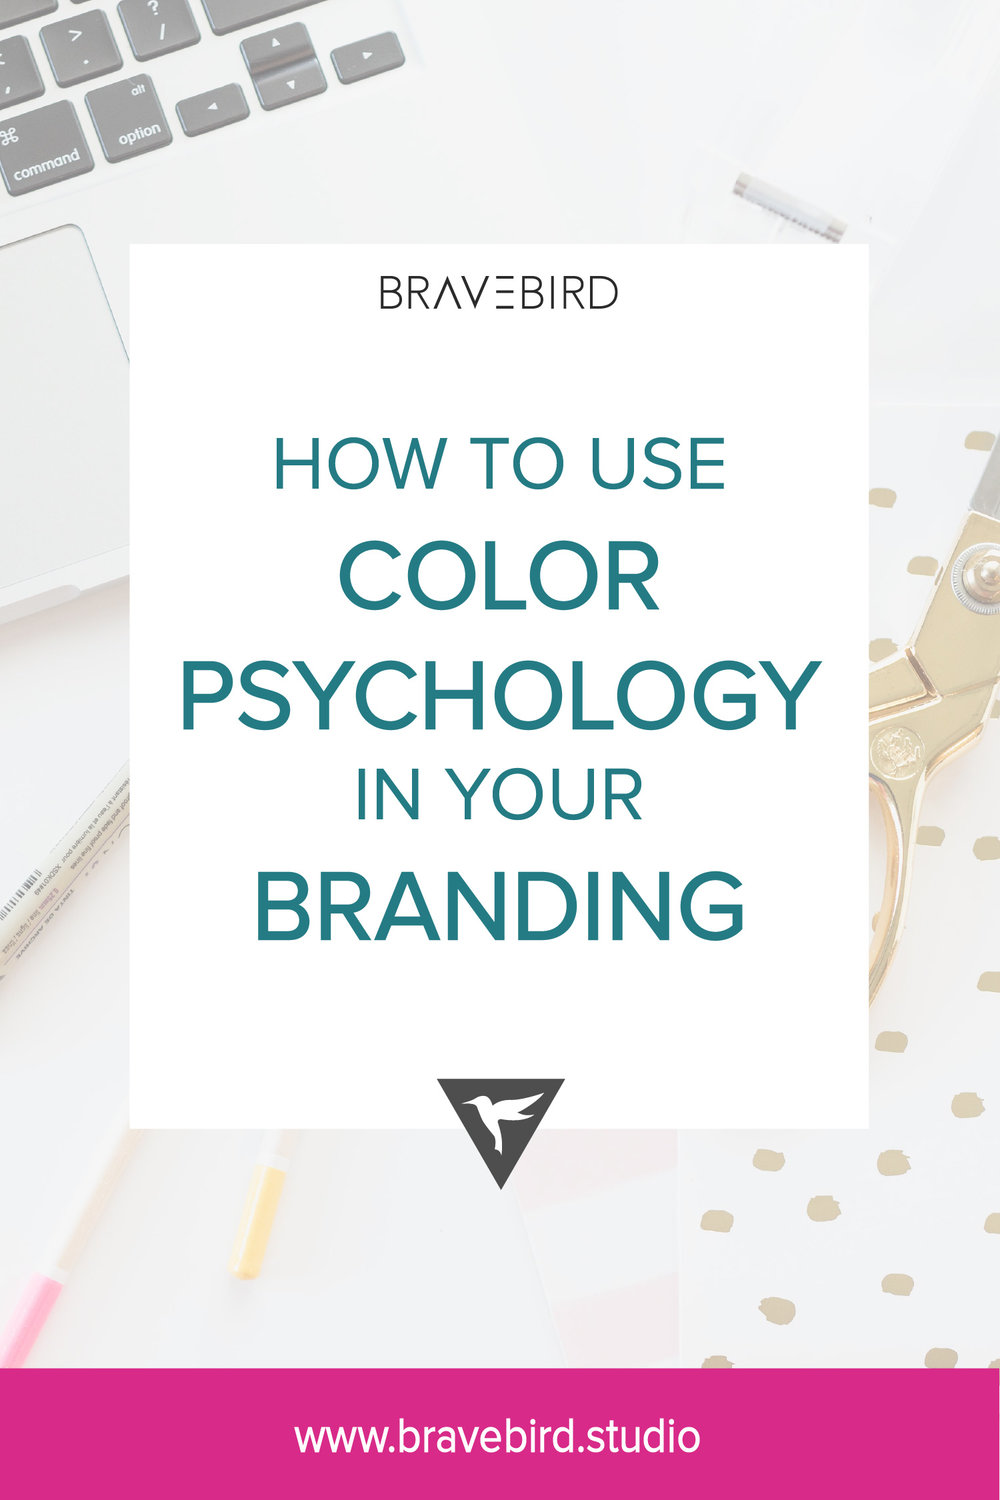 How to use color psychology in your branding | Bravebird Studio